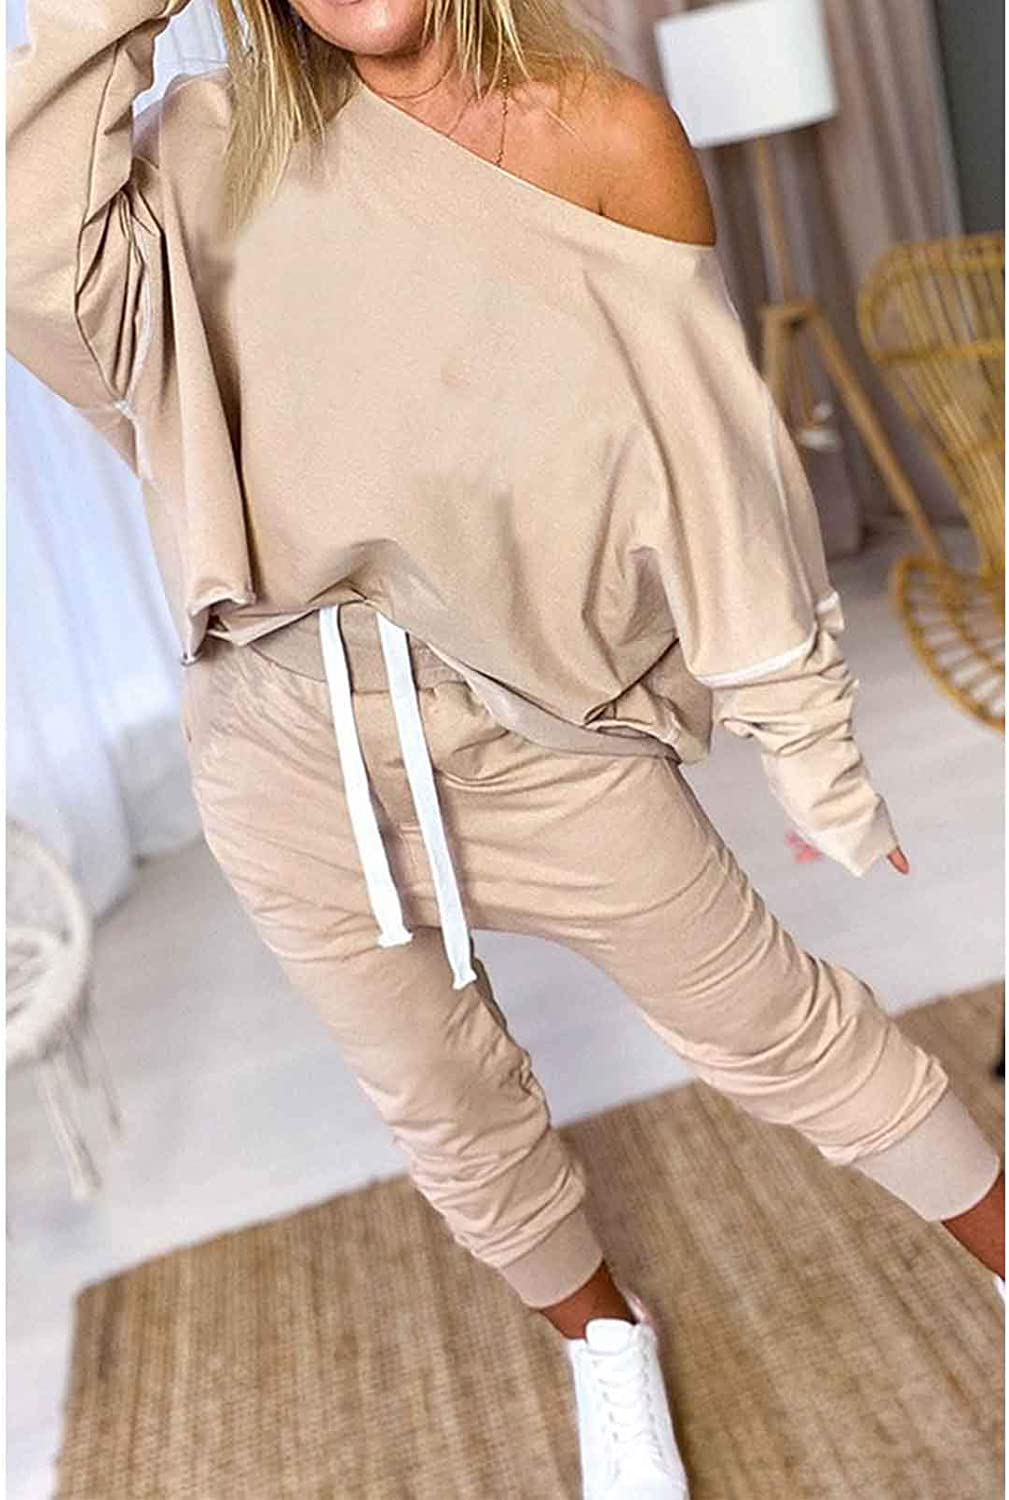 Womens Two Piece Boat Neck Long Sleeve High Waist Sweatsuits Pullover Shirts and Drawstring Sweatpants Set